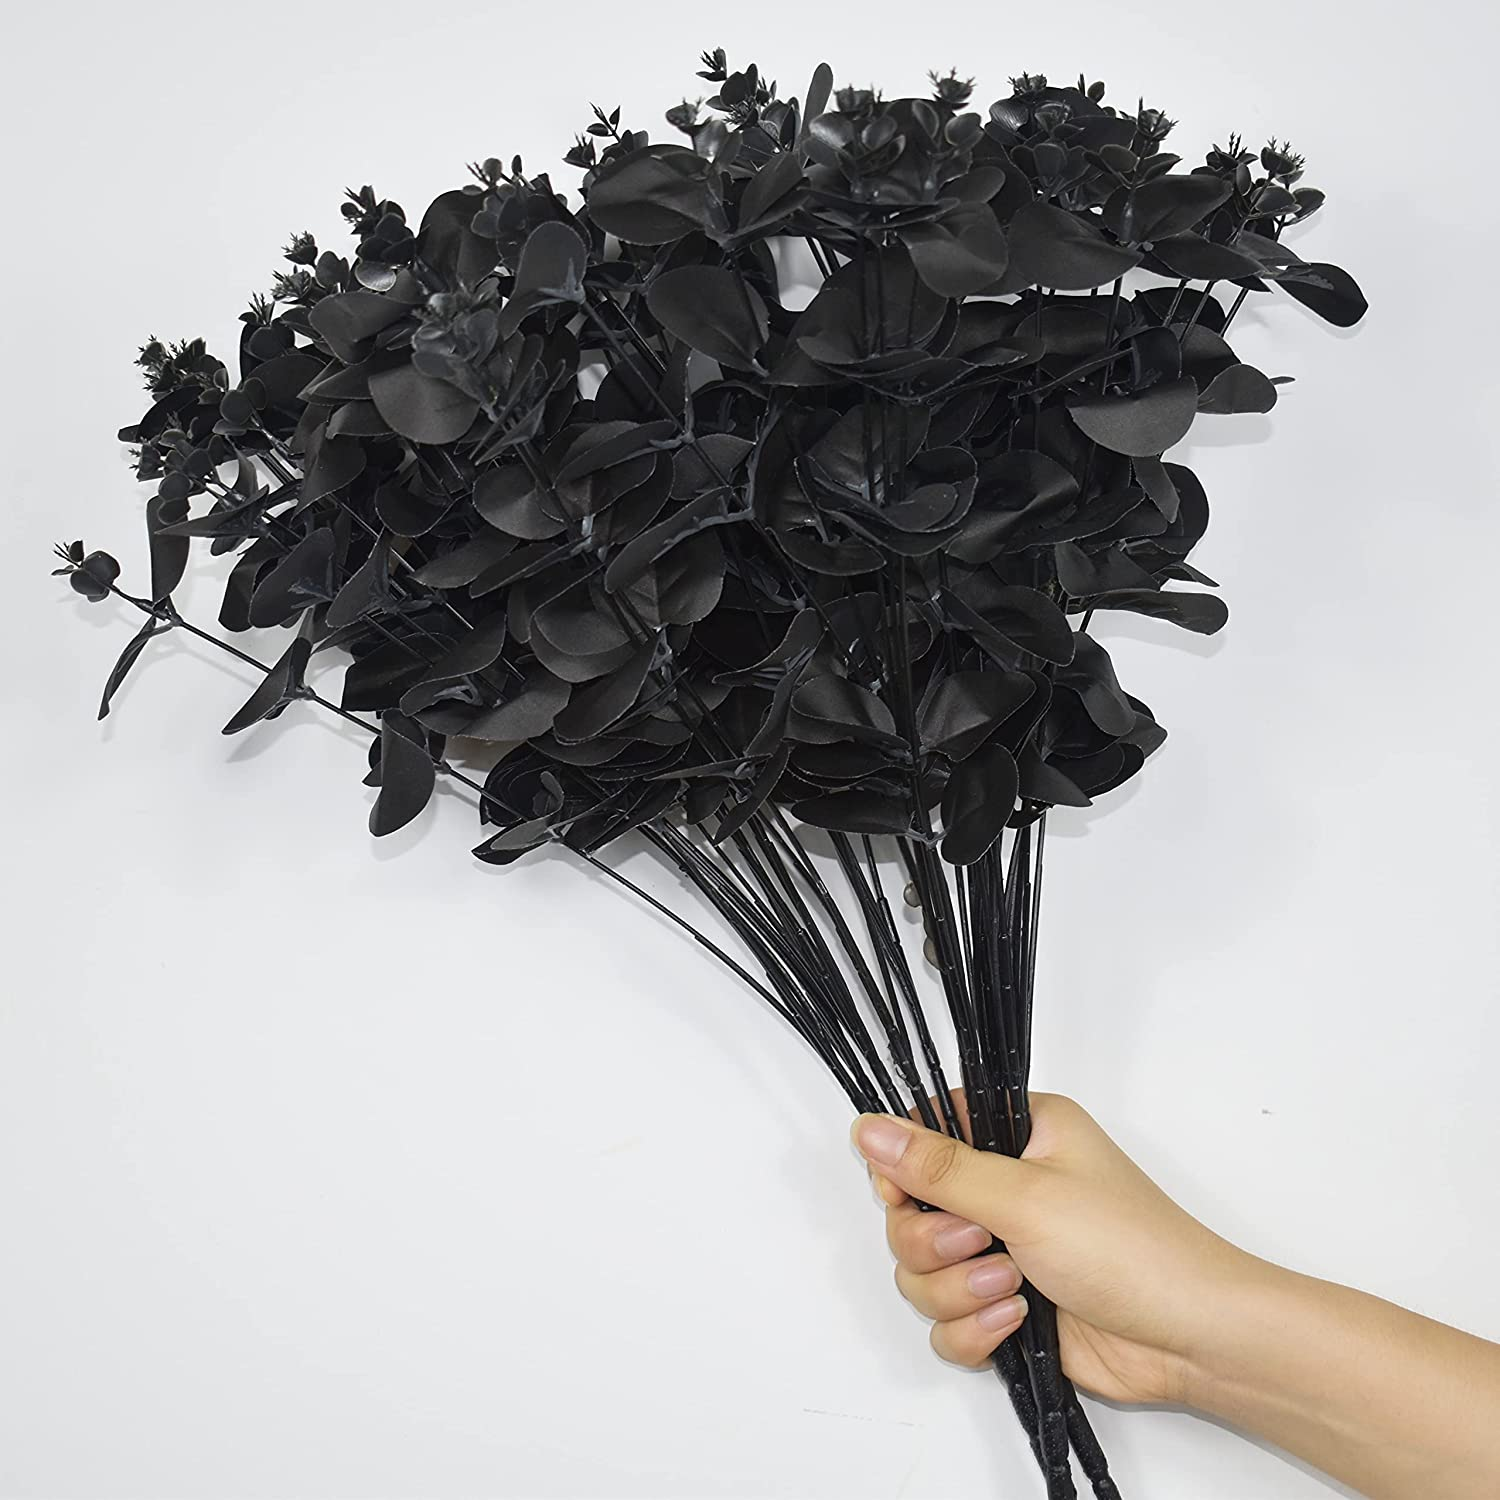 Plobach 3pcs Black Artificial Eucalyptus Leaves, Faux Silk Eucalyptus Stems Bouquet Fake Greenery Plants with Total 16 Stems Arrangement for Home Party Halloween and Wedding Home Decor